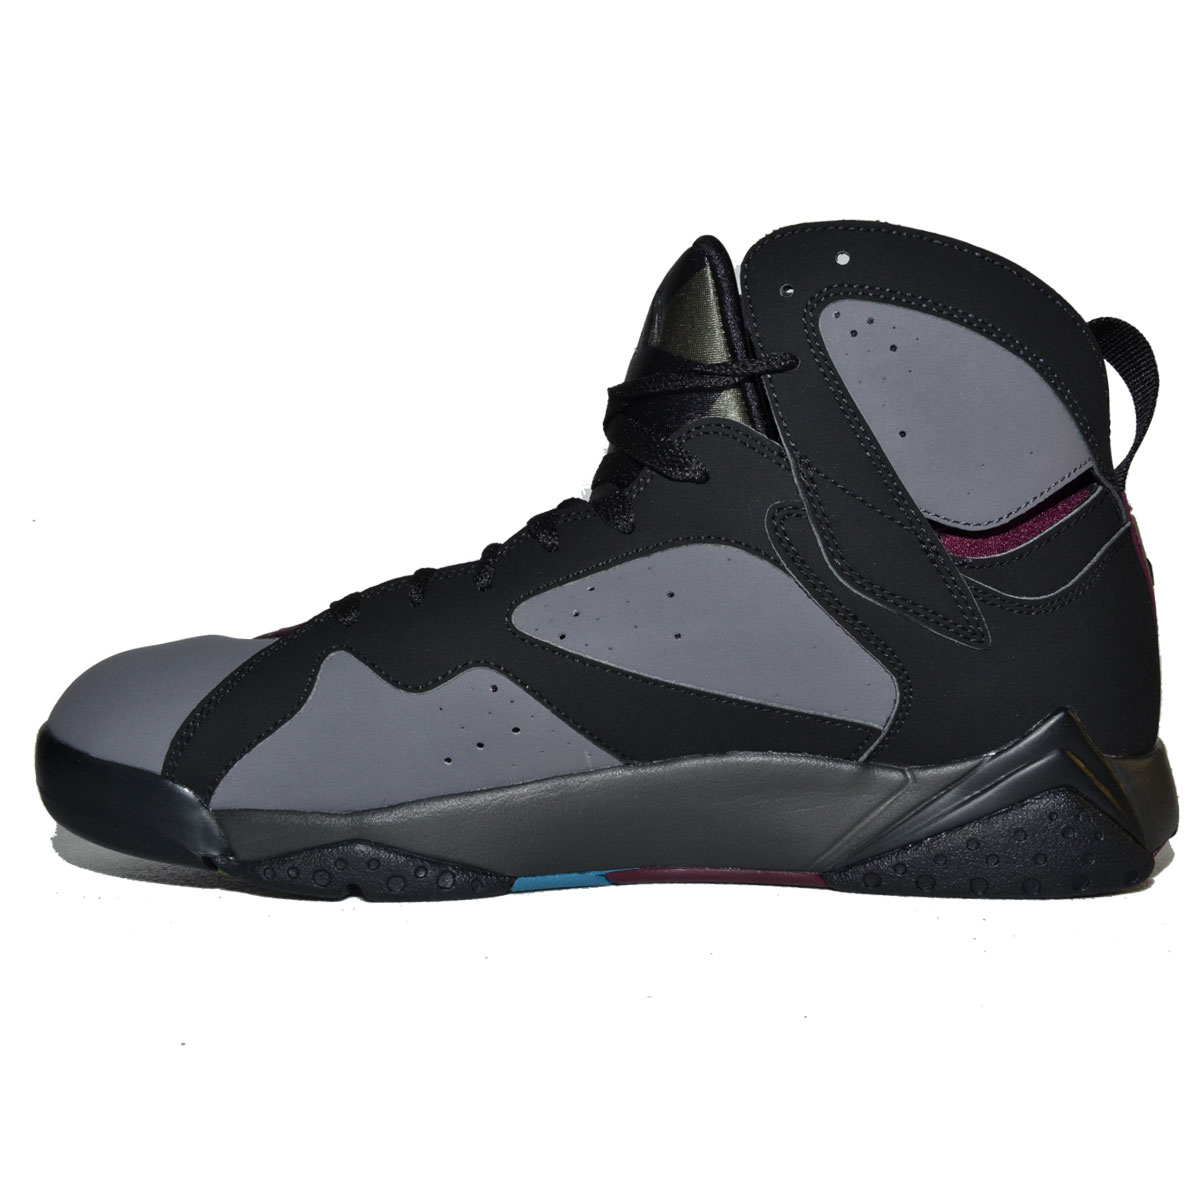 release date 9c5a9 fc349 ... official nike air jordan 7 retro bordeaux 2015 sneakers shoes 304775 034  us10 876ba 6f346